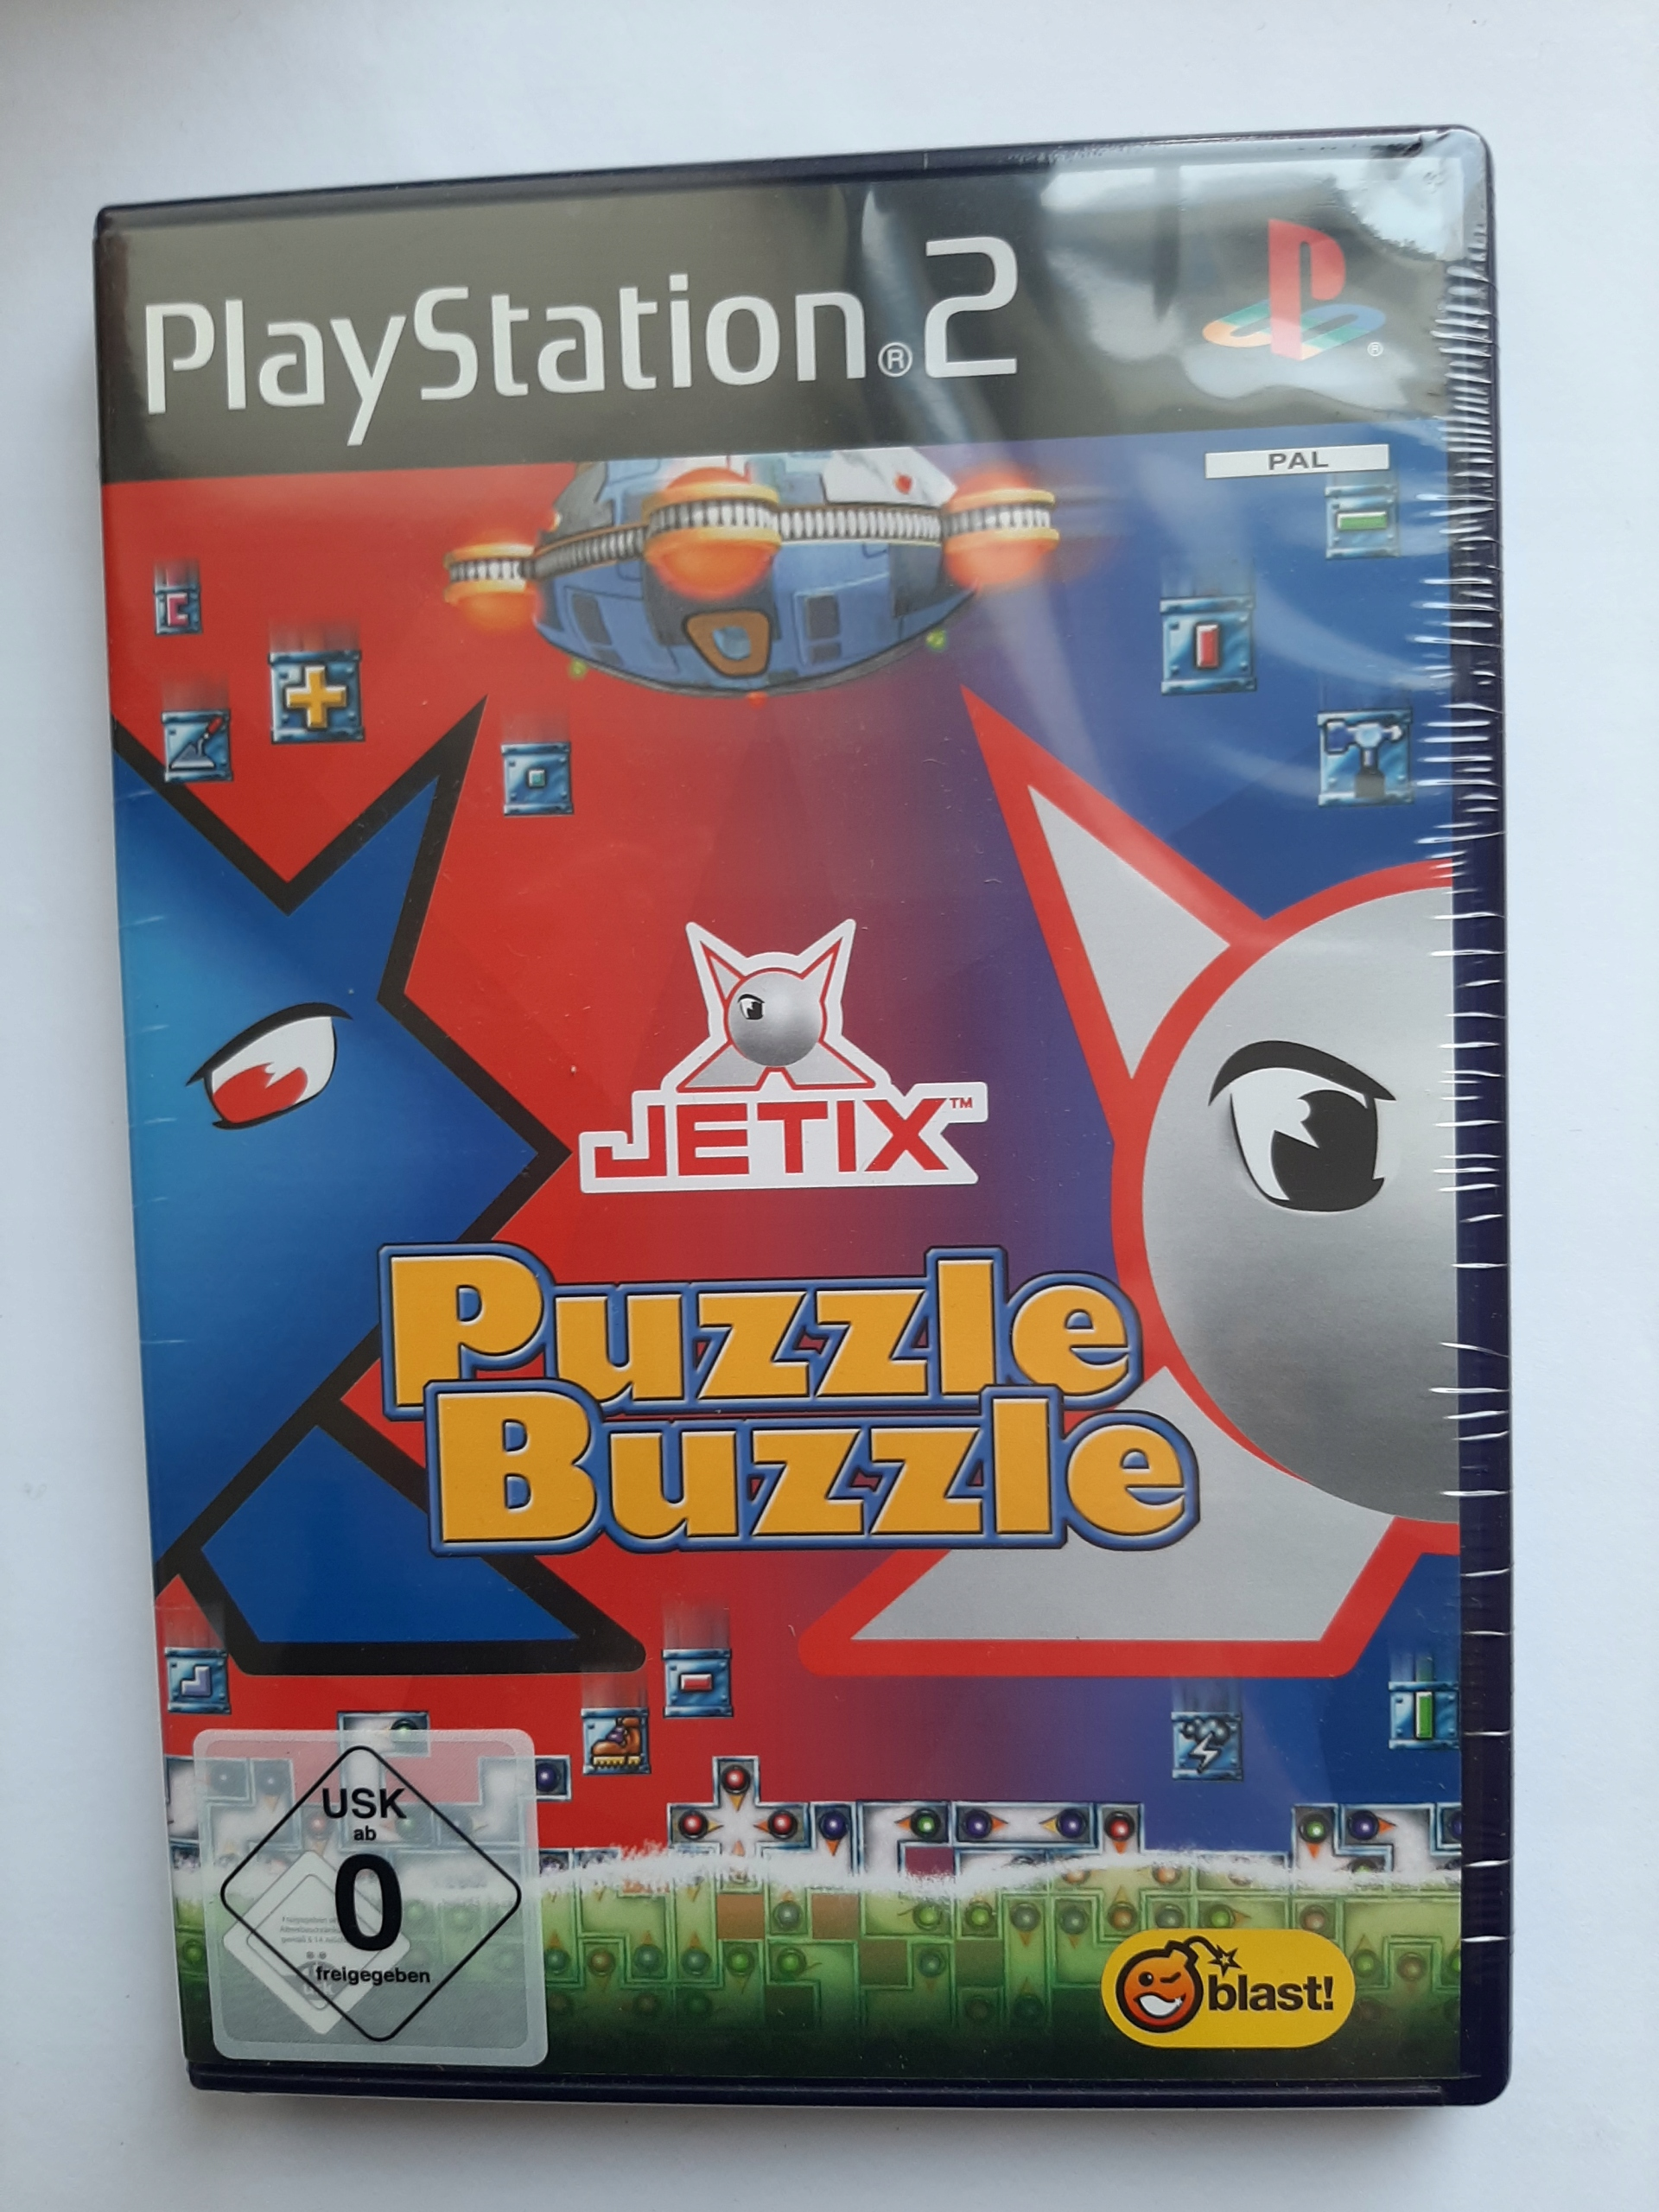 * Puzzle Buzzle PlayStation 2